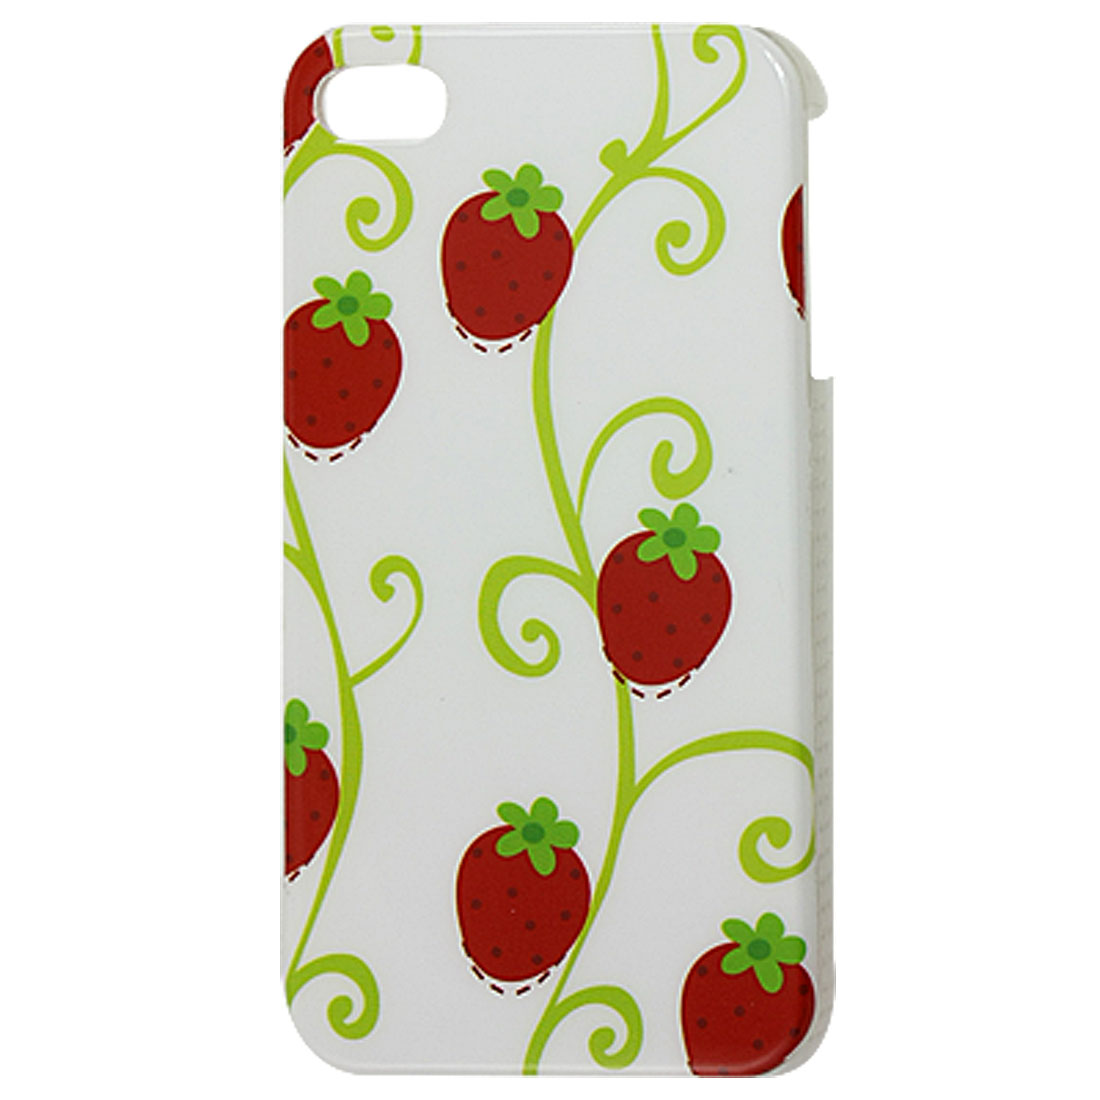 Strawberry Print IMD Plastic Back Shell Cover White for iPhone 4G 4GS